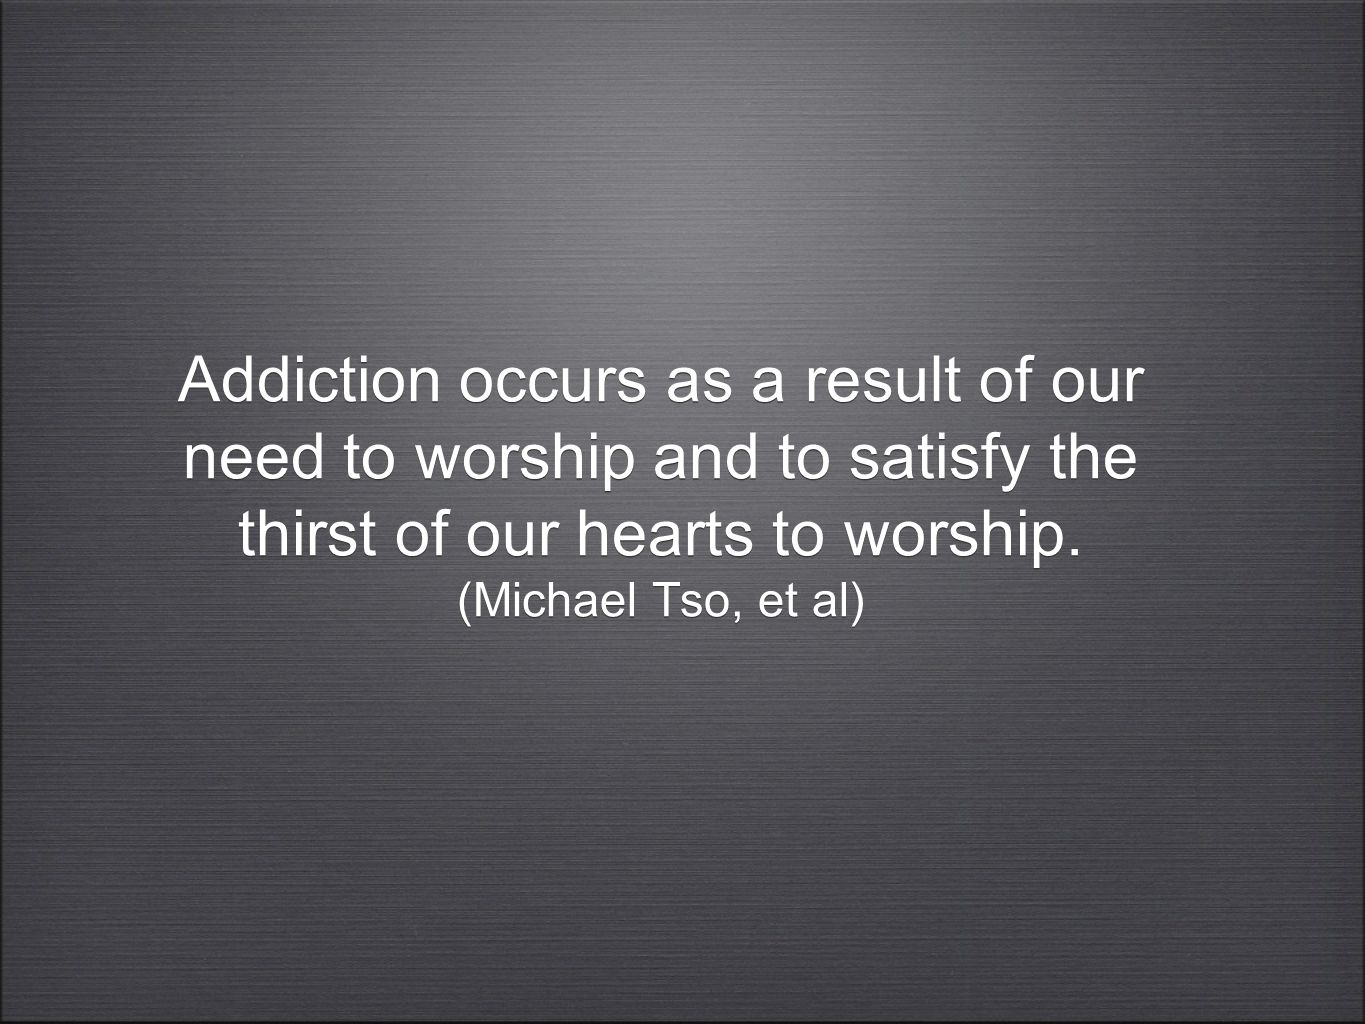 Addiction occurs as a result of our need to worship and to satisfy the thirst of our hearts to worship. (Michael Tso, et al)